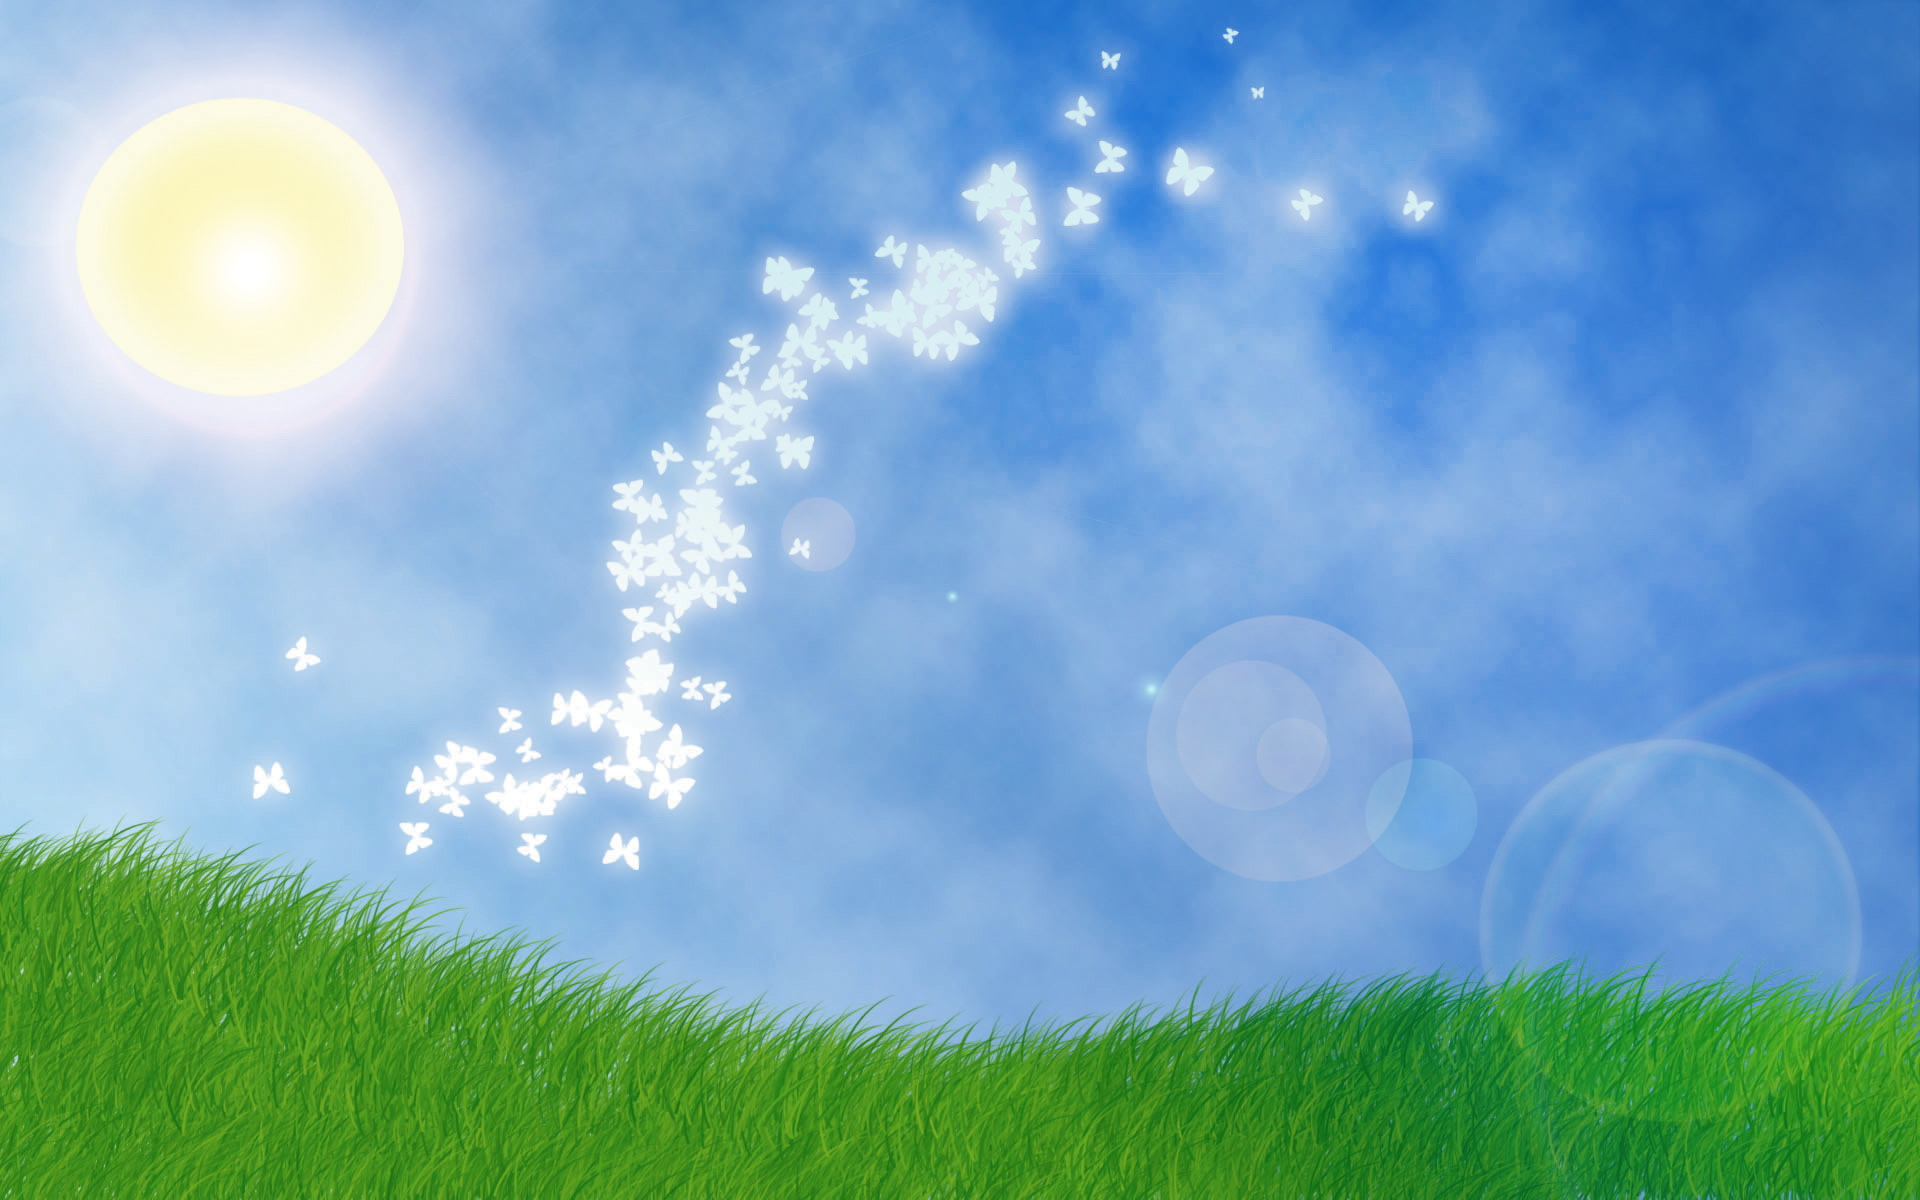 Sunny Day Wallpapers | HD Wallpapers Pulse